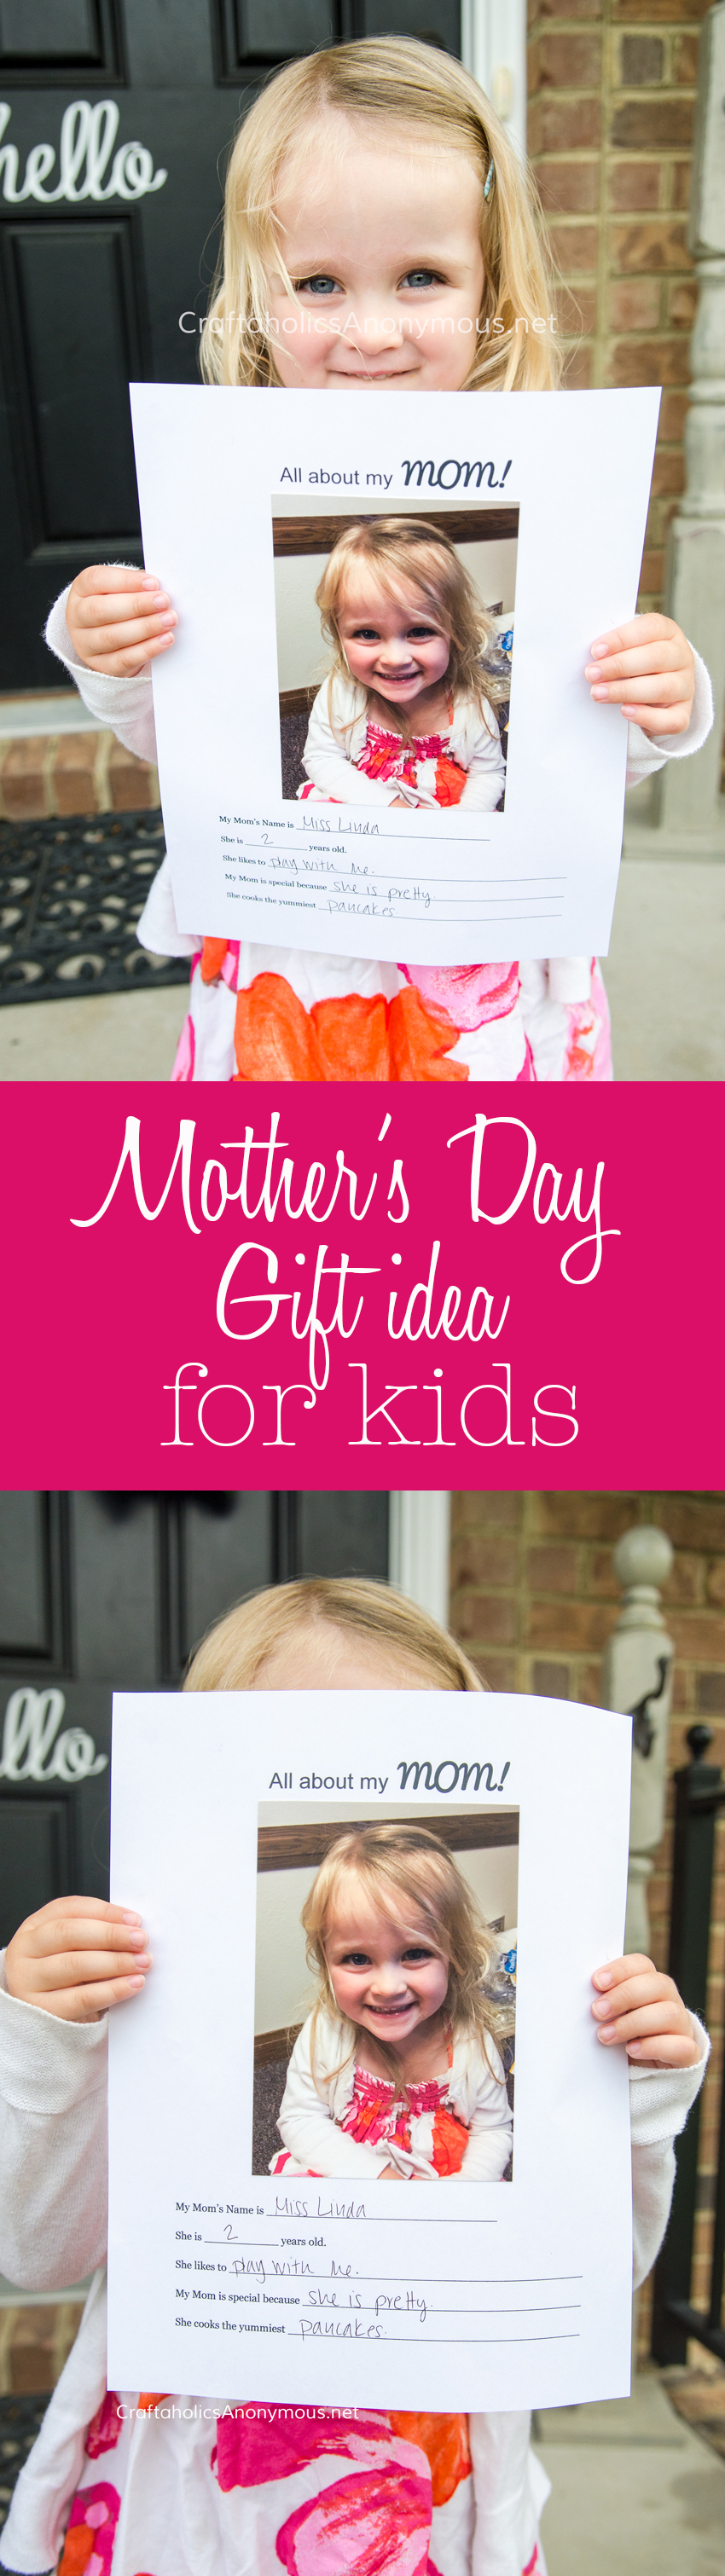 Mother's-Day-gift-idea-for-kids